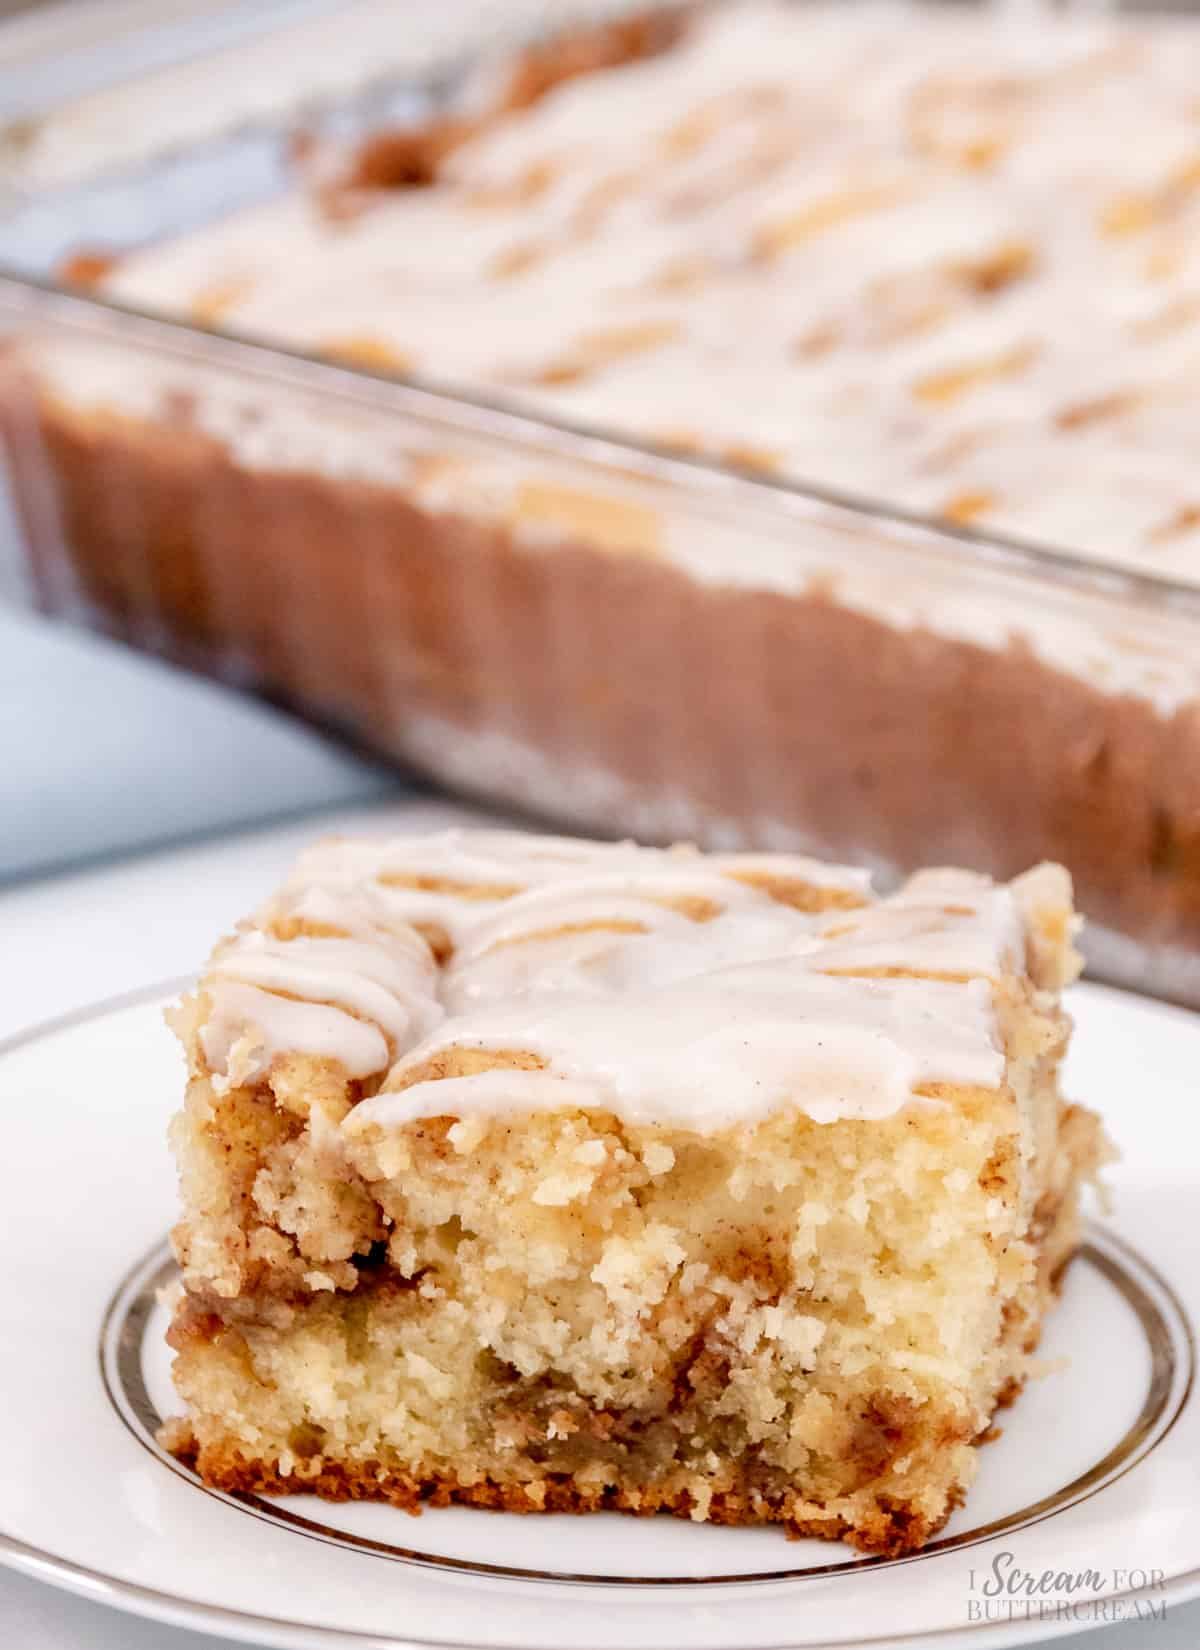 cinnamon roll cake close up on a plate